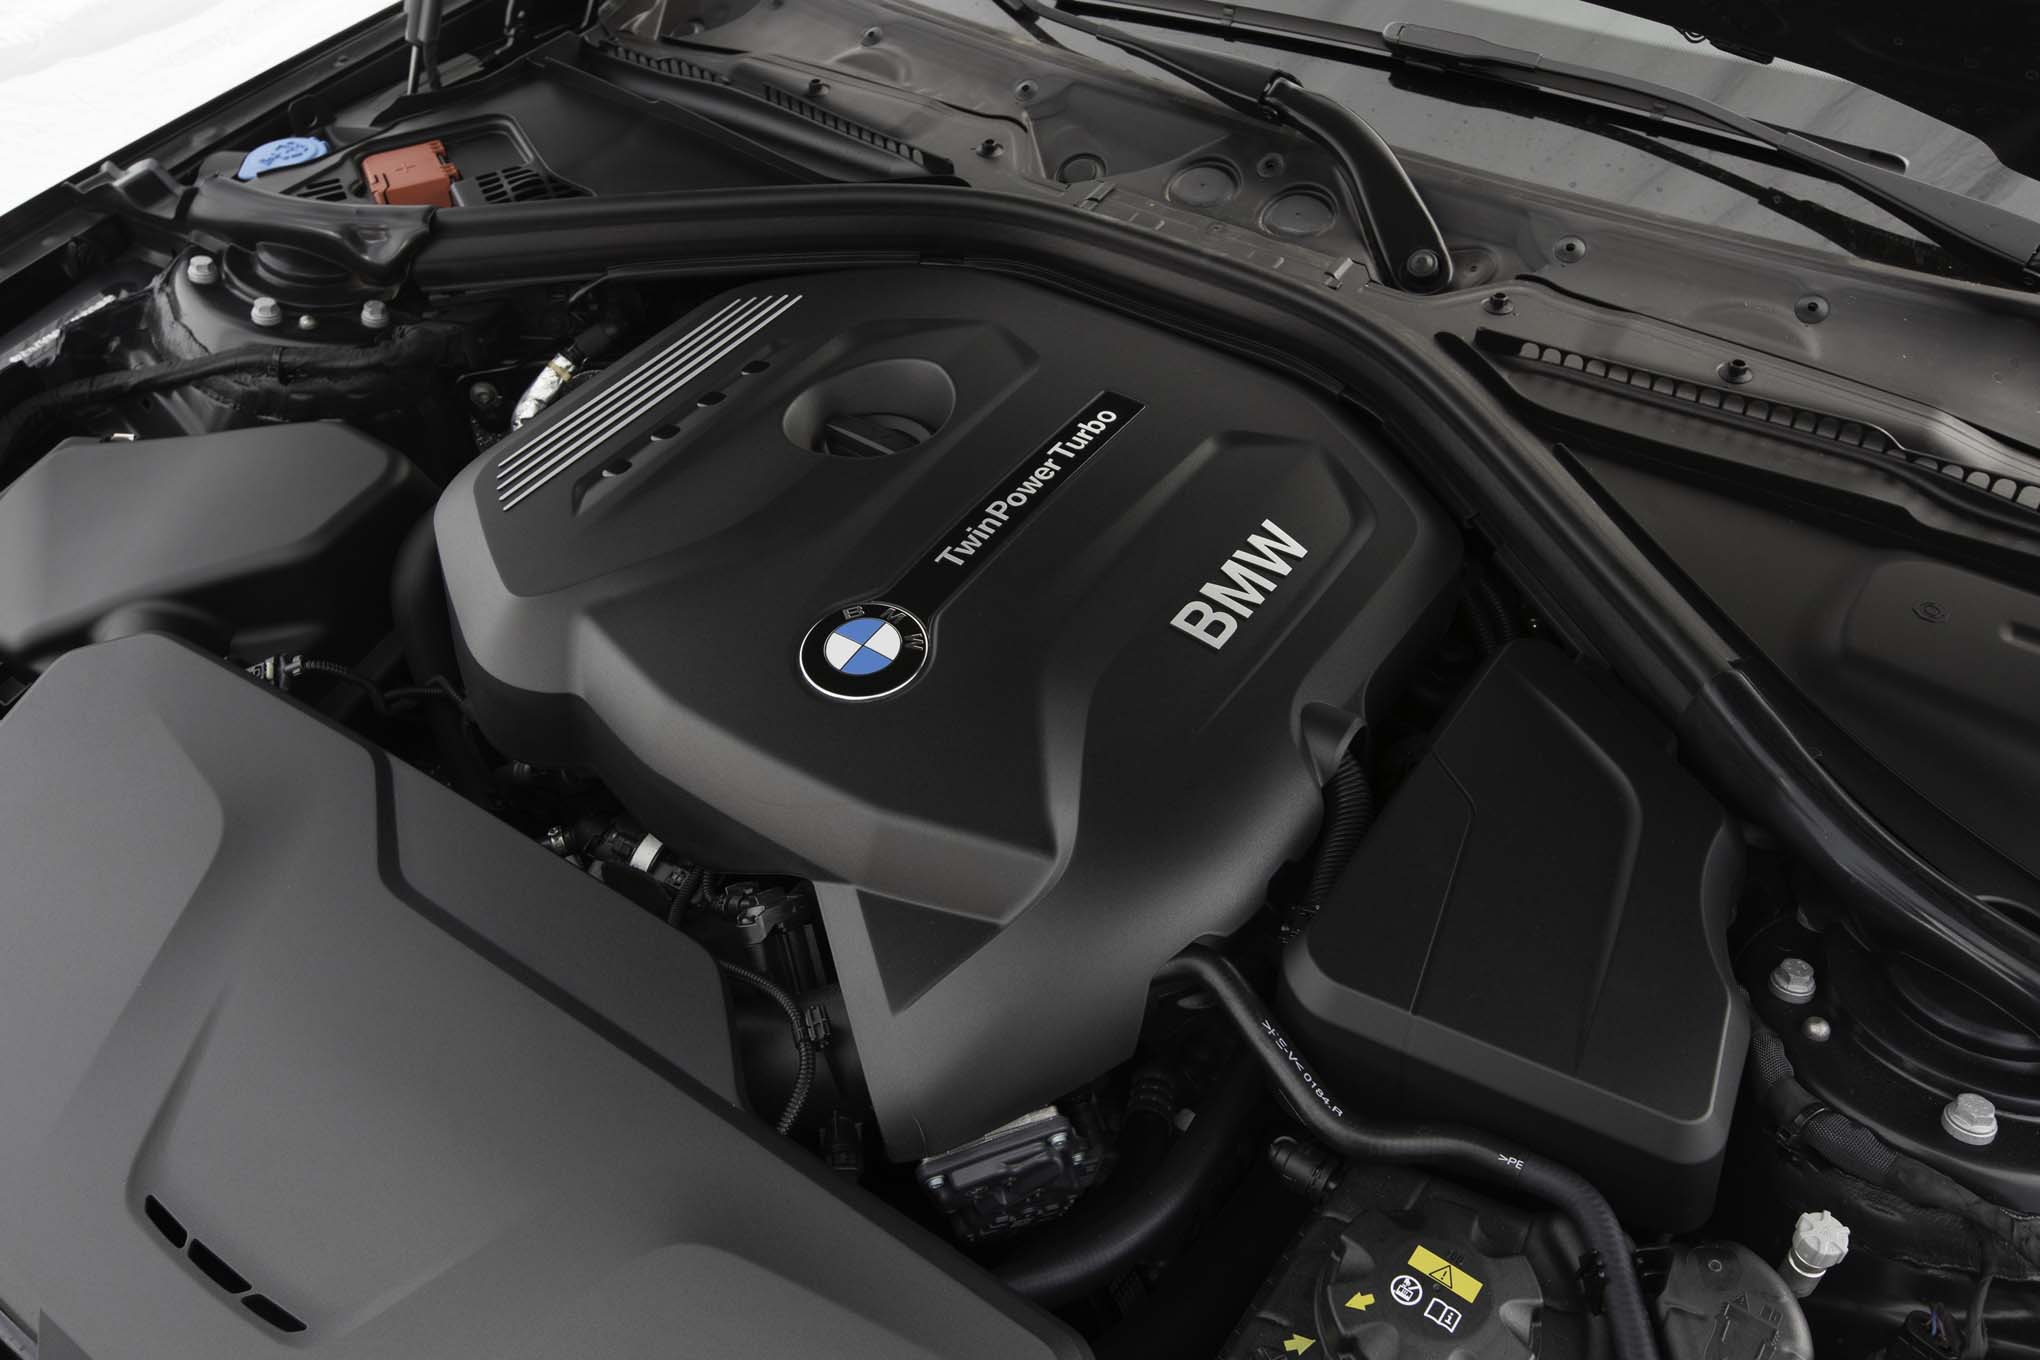 2017 BMW 330i Sedan View Engine (View 59 of 59)